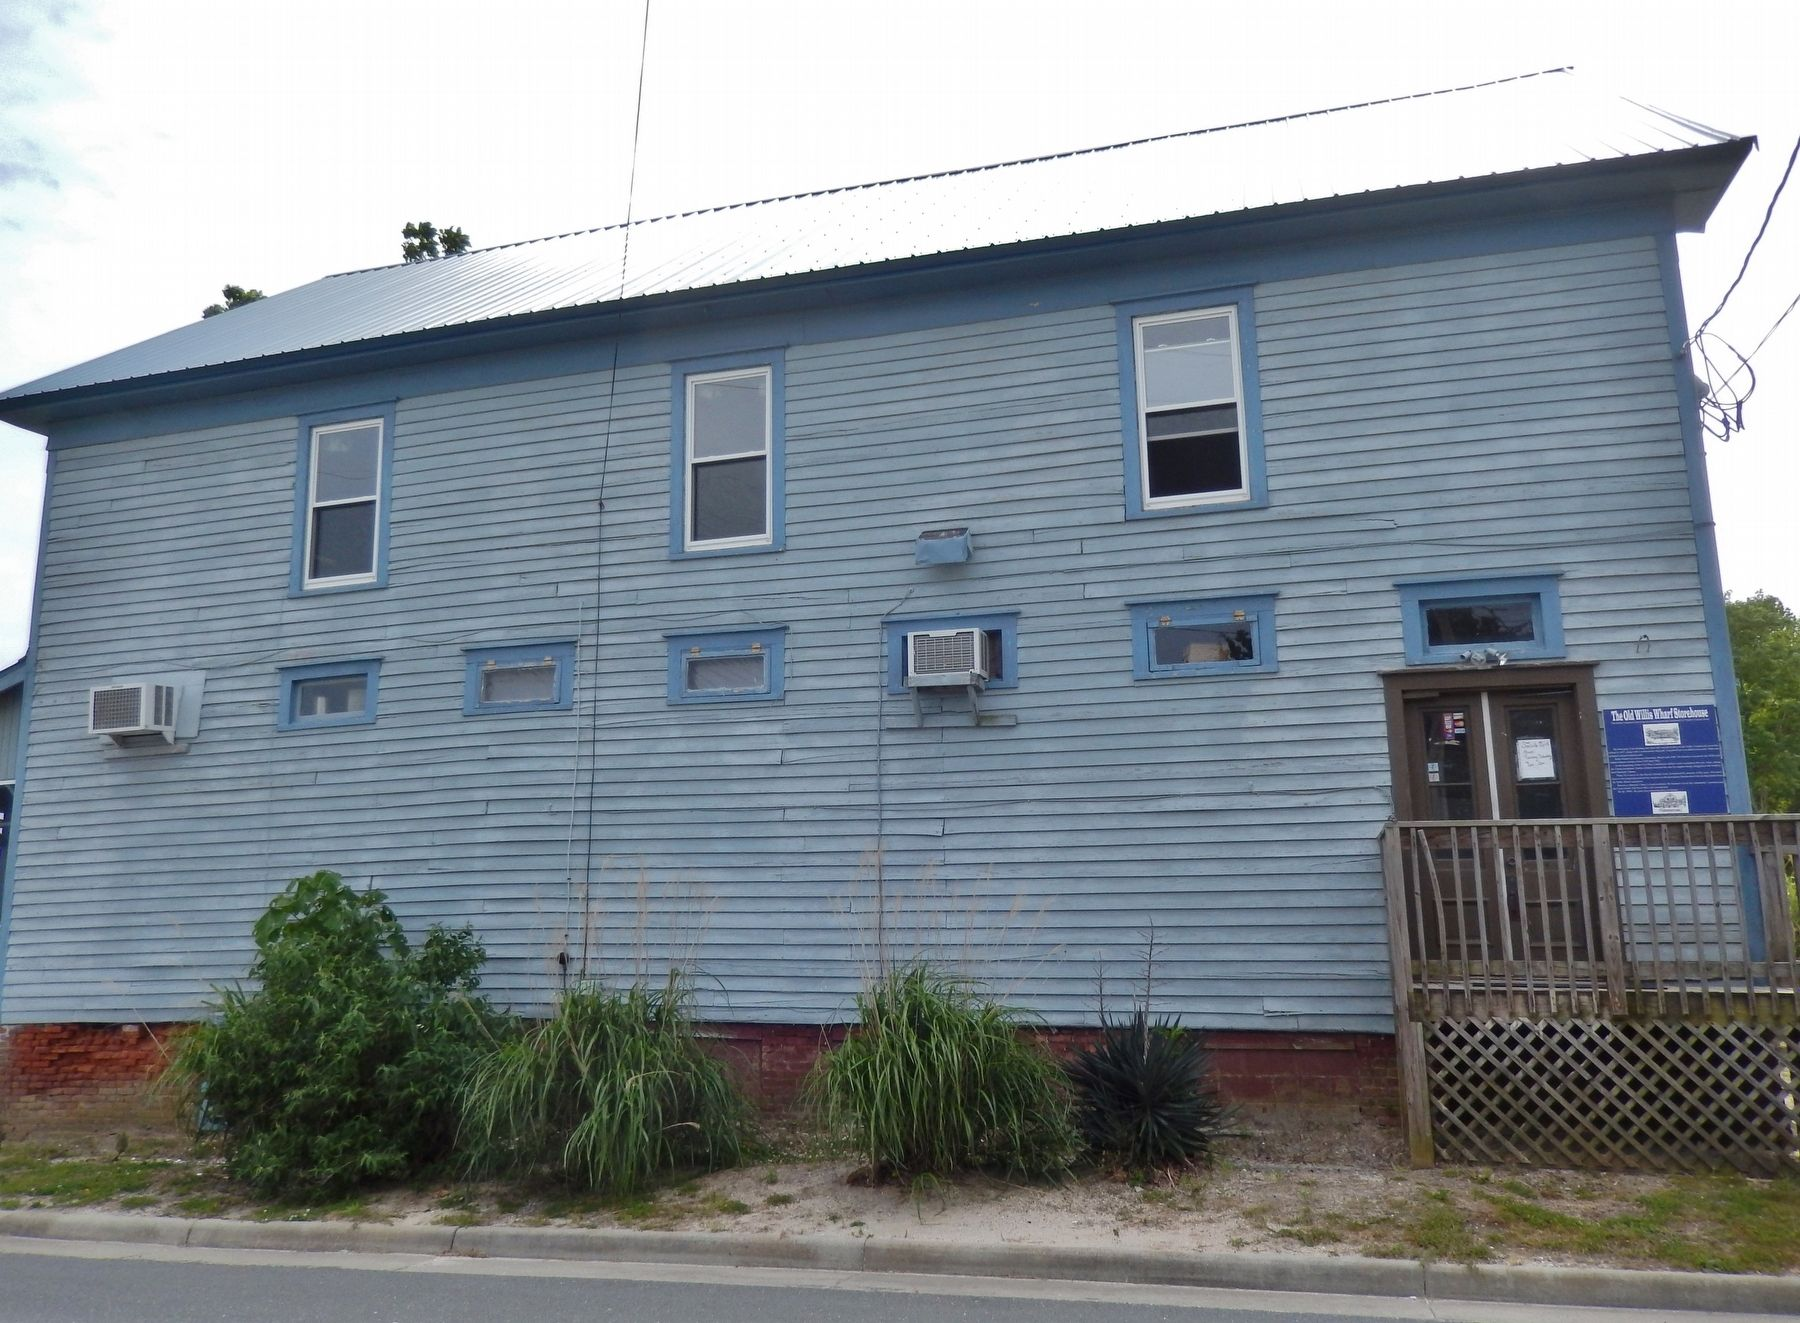 The Old Willis Wharf Storehouse (<i>side view; marker visible right of door</i>) image. Click for full size.